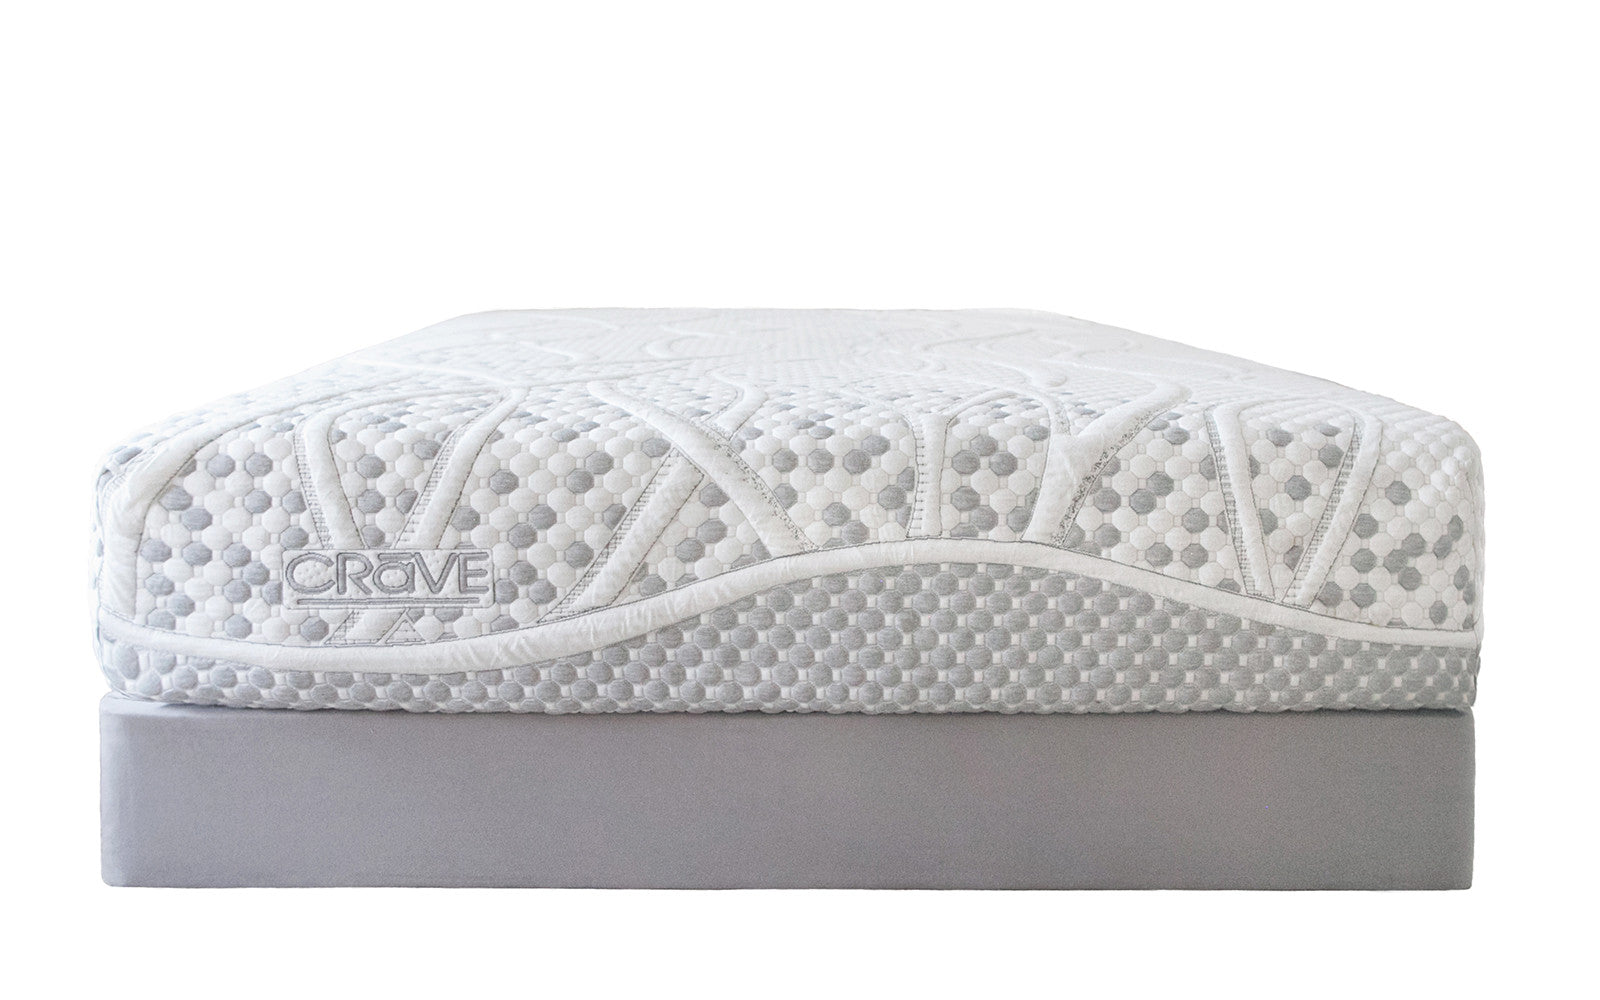 the best innerspring mattress from crave mattress - Best Innerspring Mattress